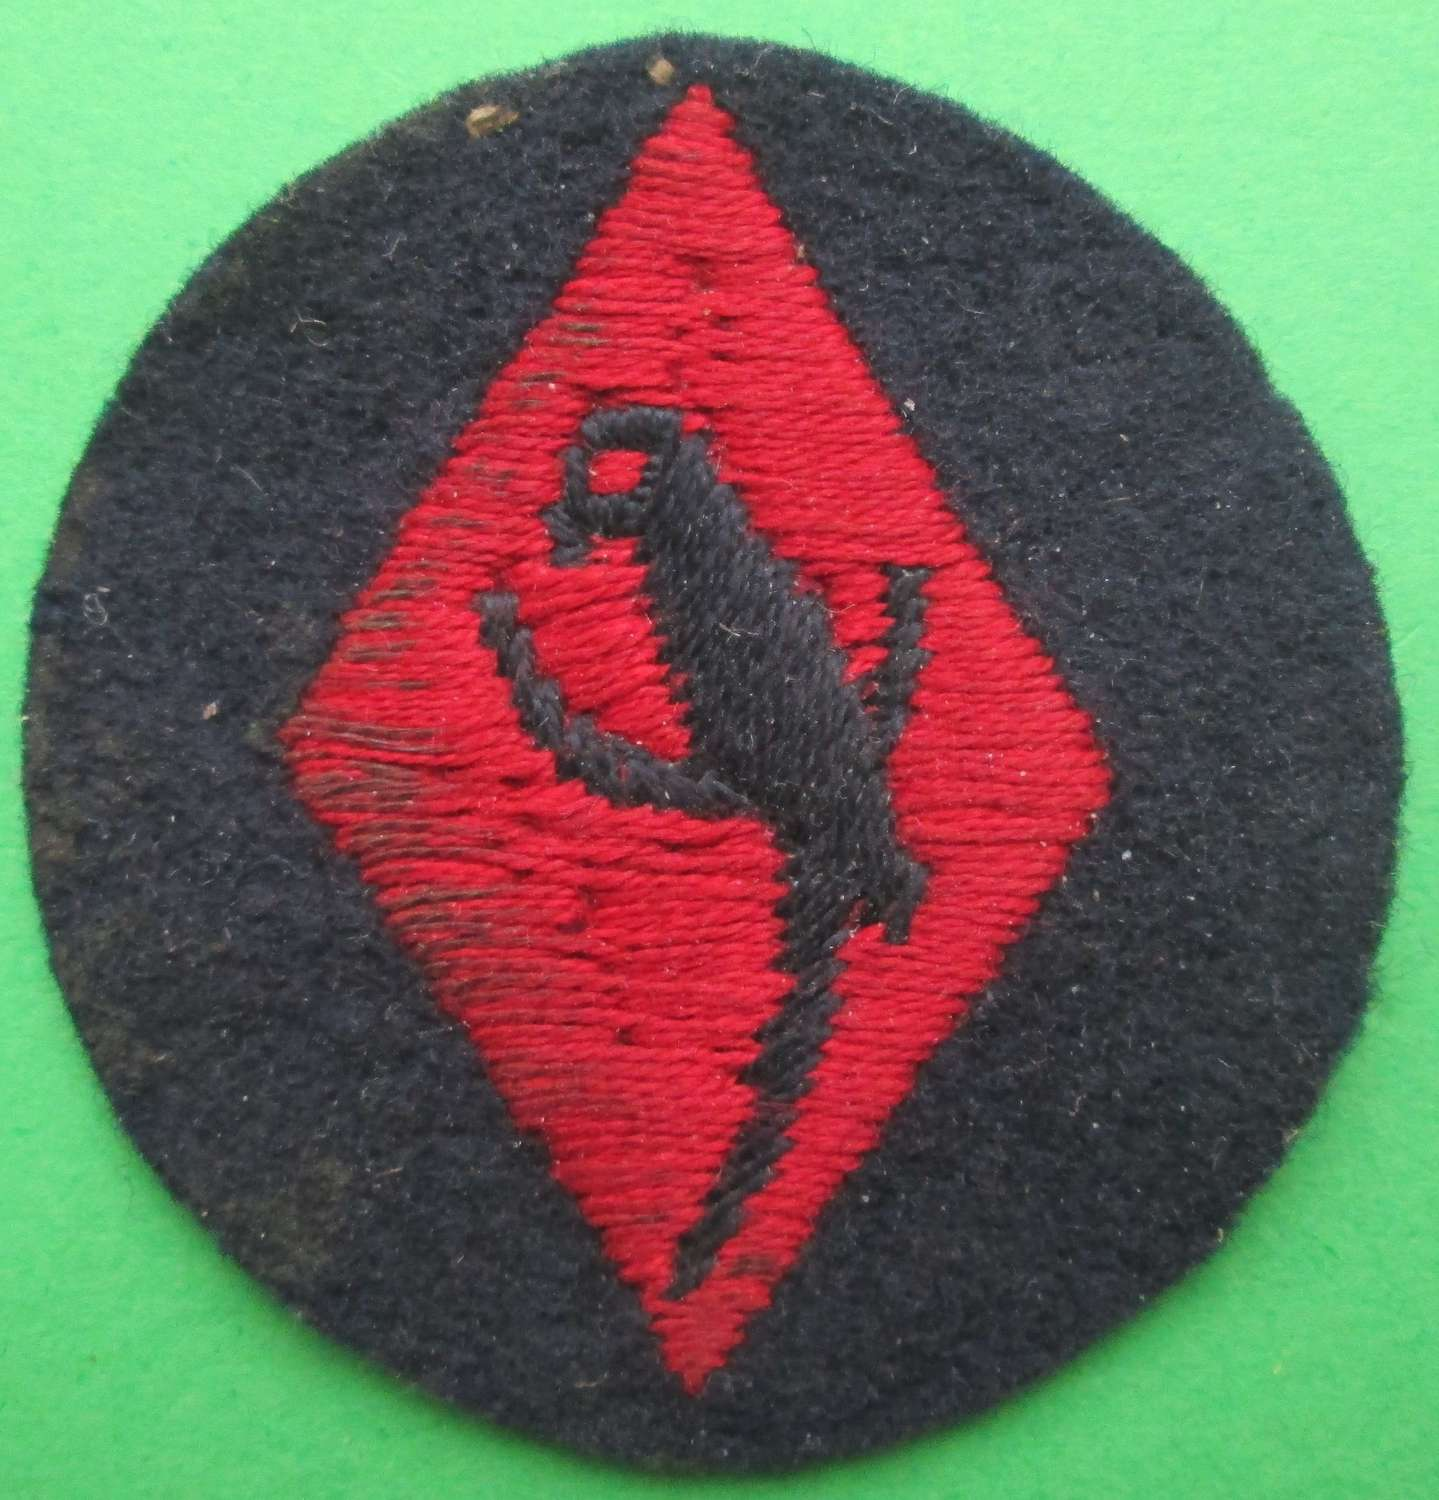 A 48TH (SOUTH MIDLAND) DIVISION 1ST PATTERN FORMATION SIGN